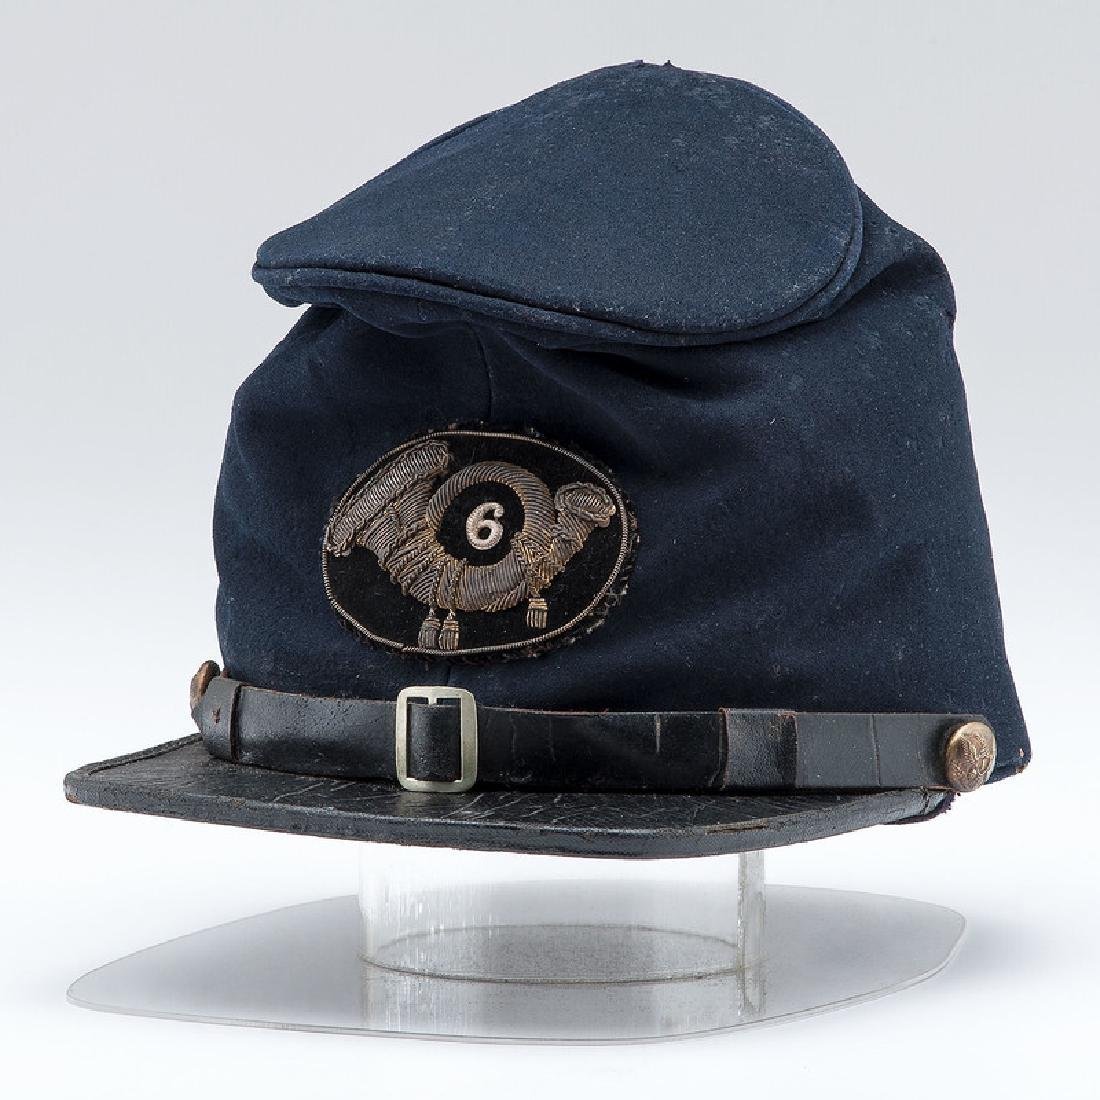 Commercial Federal Officer's Cap